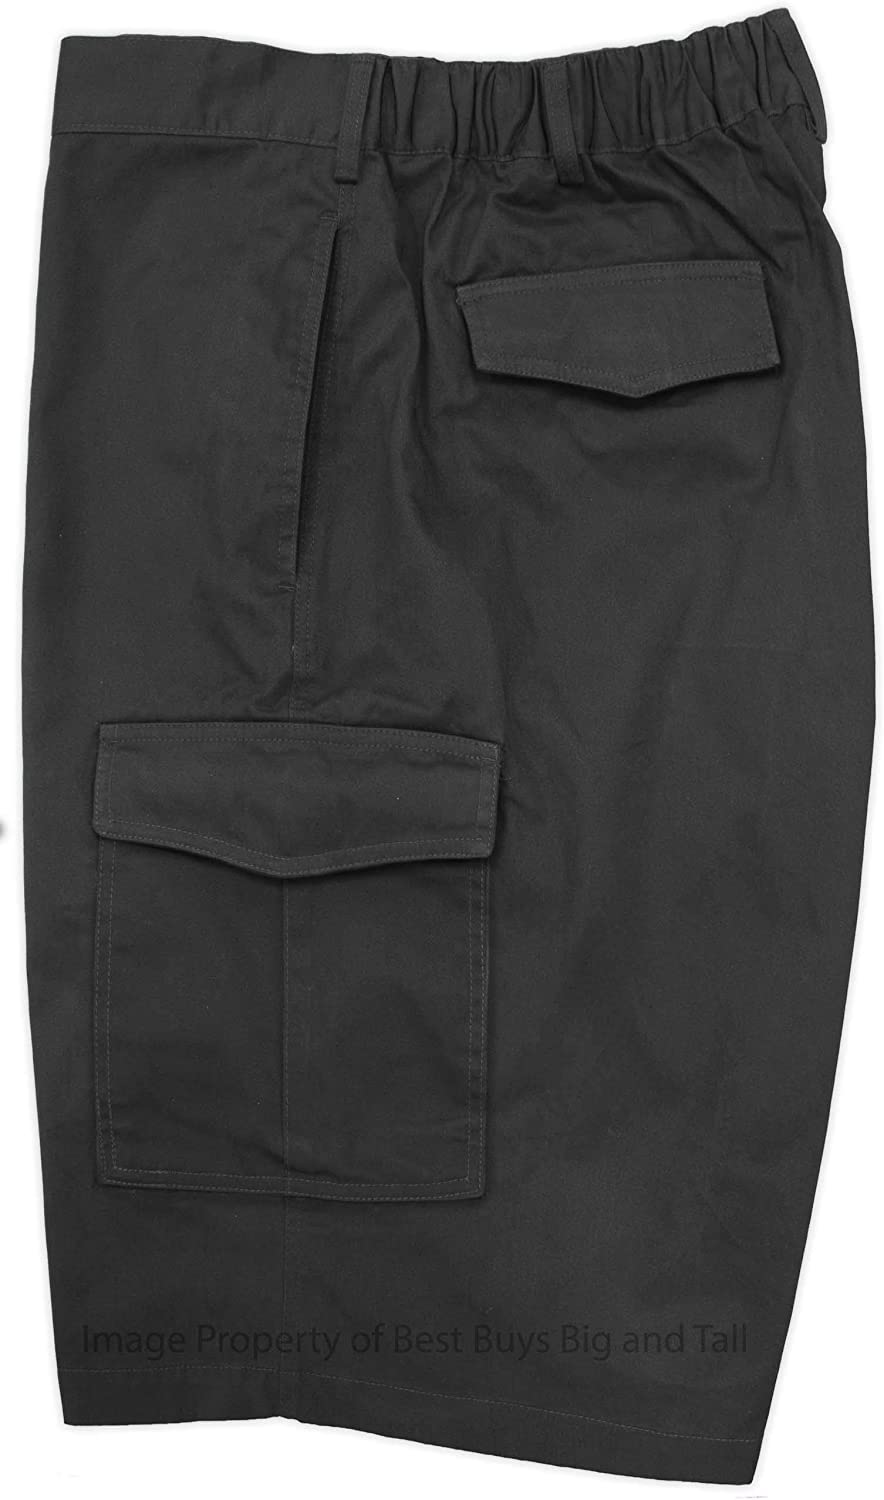 Falcon Bay Big & Tall Mens Cargo Shorts with Expandable Comfort Waistband